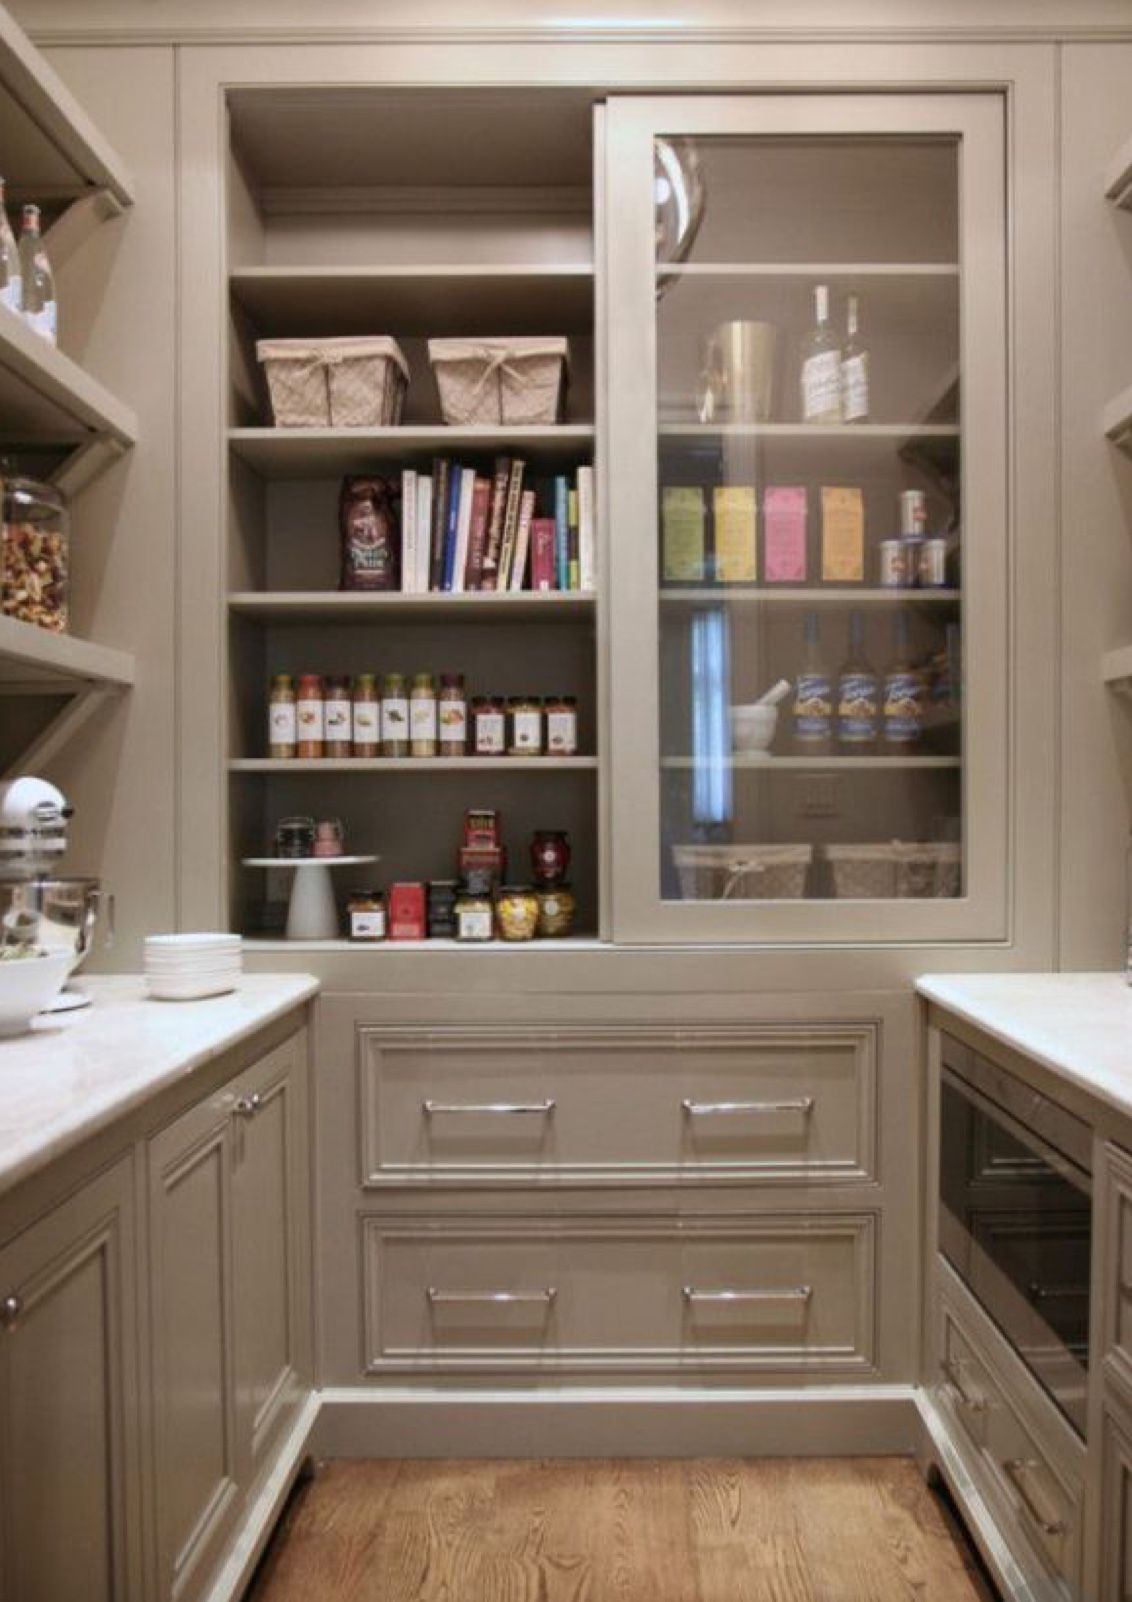 Pantry | Home | Pinterest